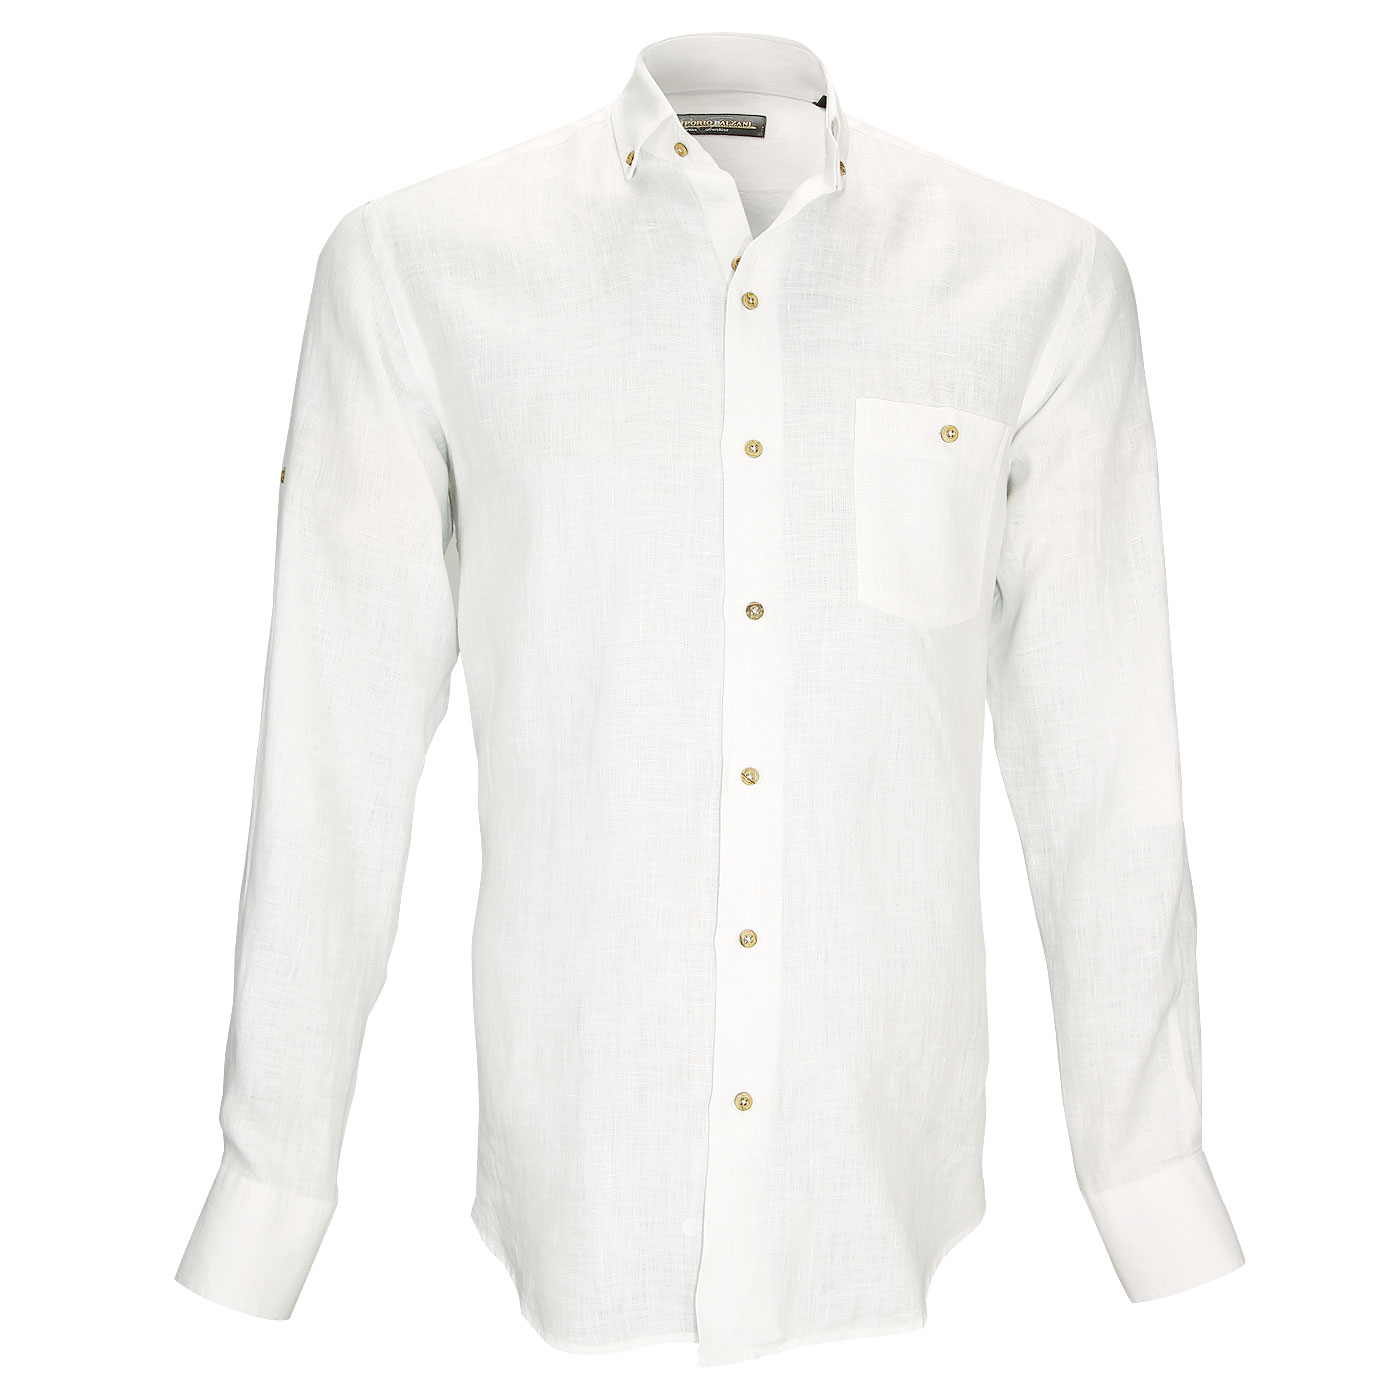 Breathable Shirt for Men by Webmenshirts.com